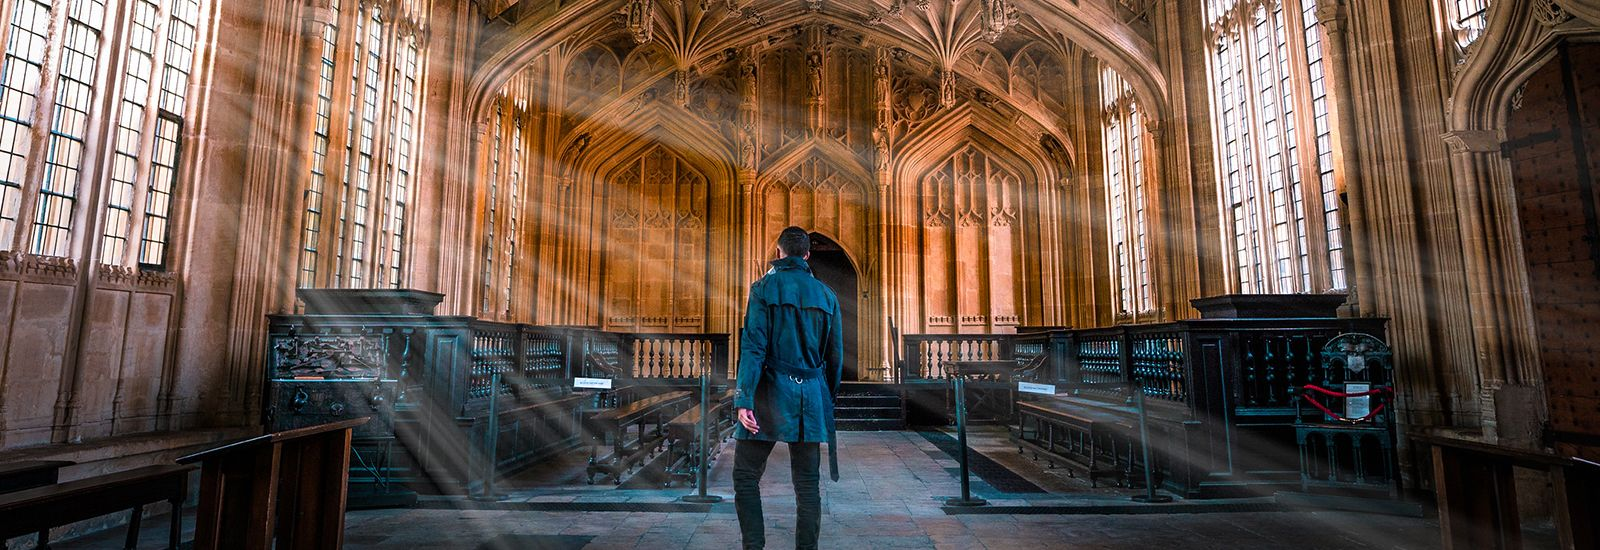 A student standing in the Divinity School